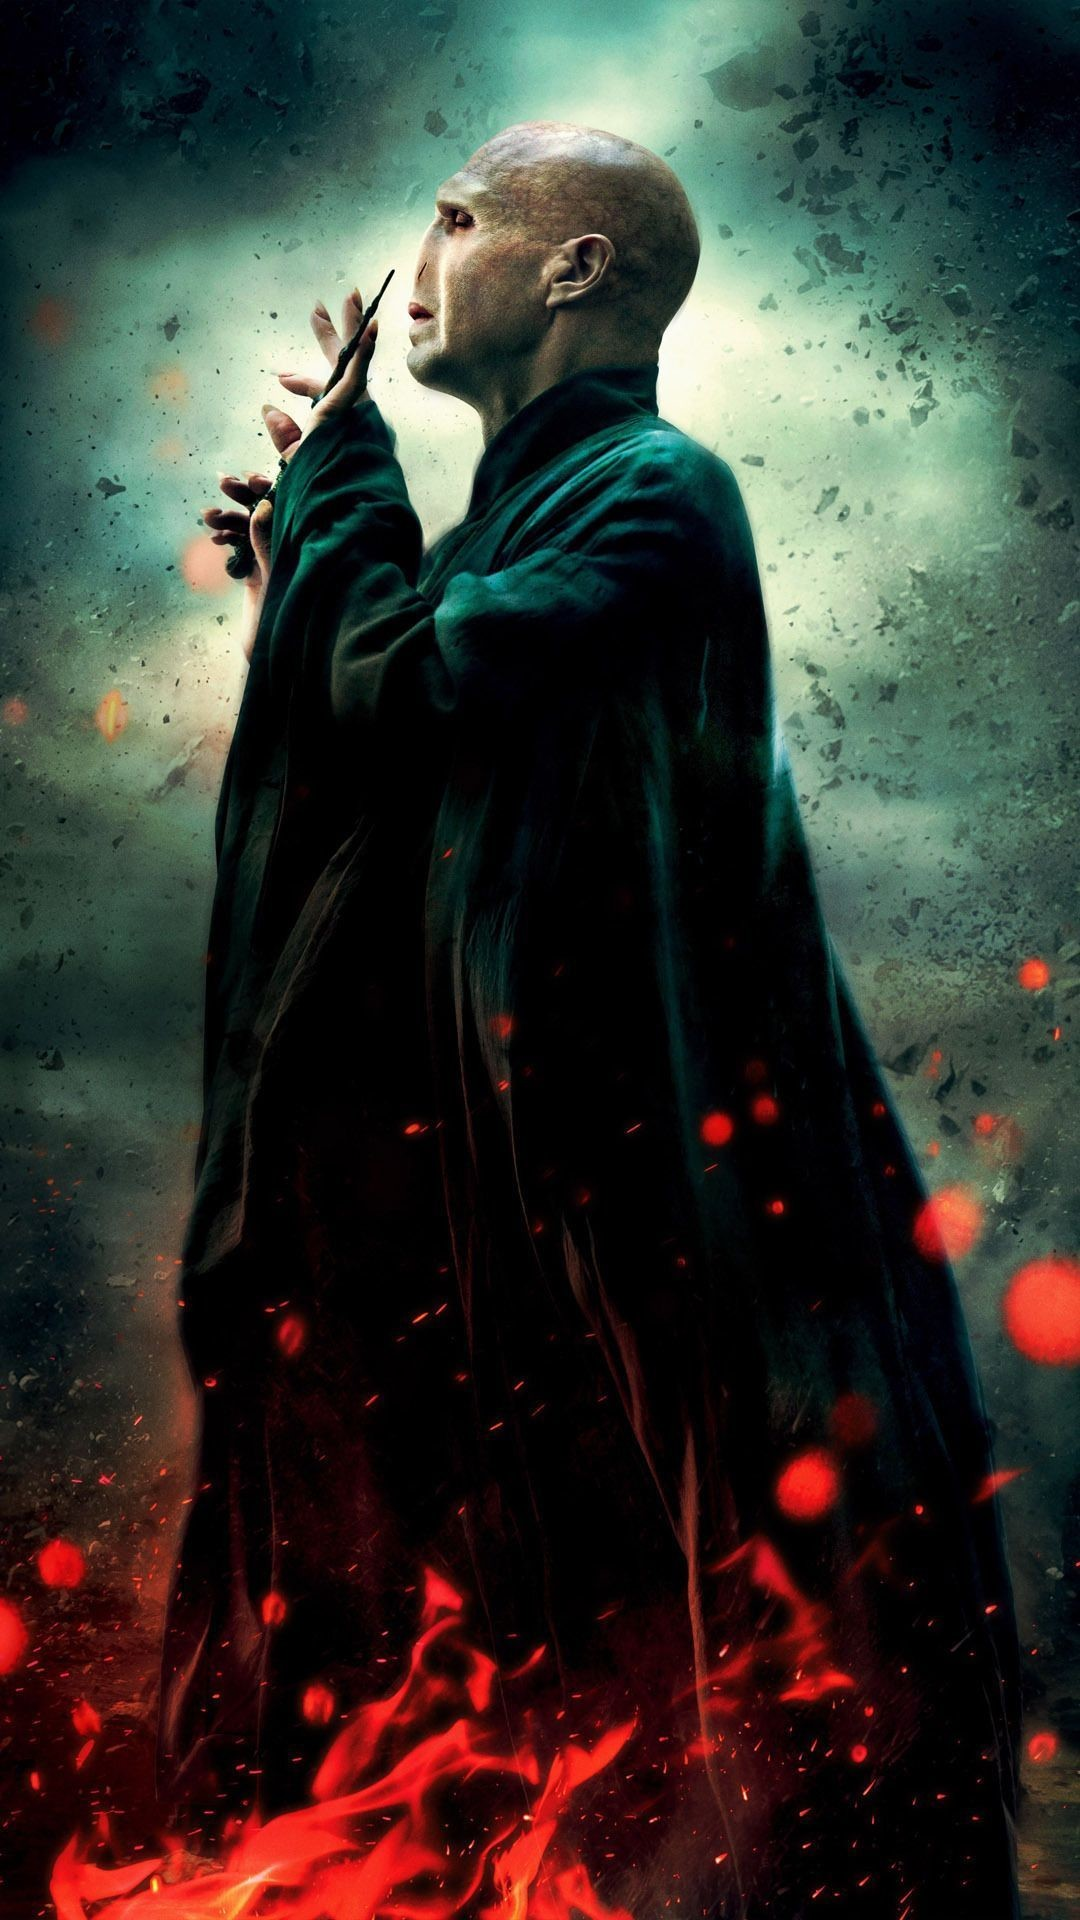 Lord Voldemort Mobile Wallpaper 8701   Data Src Free - Harry Potter And The Deathly Hallows: Part Ii (2011) - HD Wallpaper